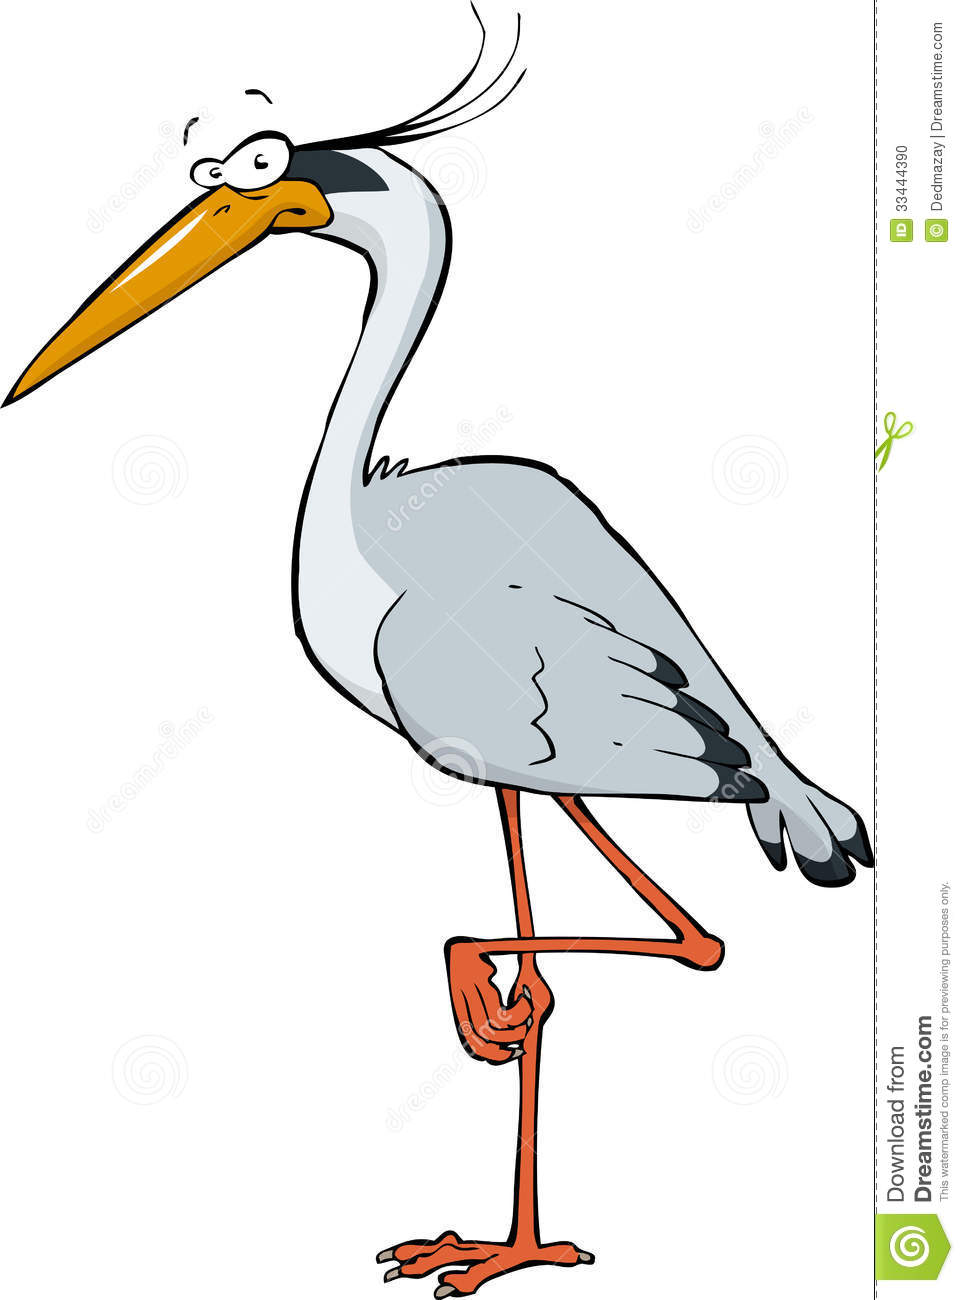 Cartoon Heron Stock Photo - Image: 33444390